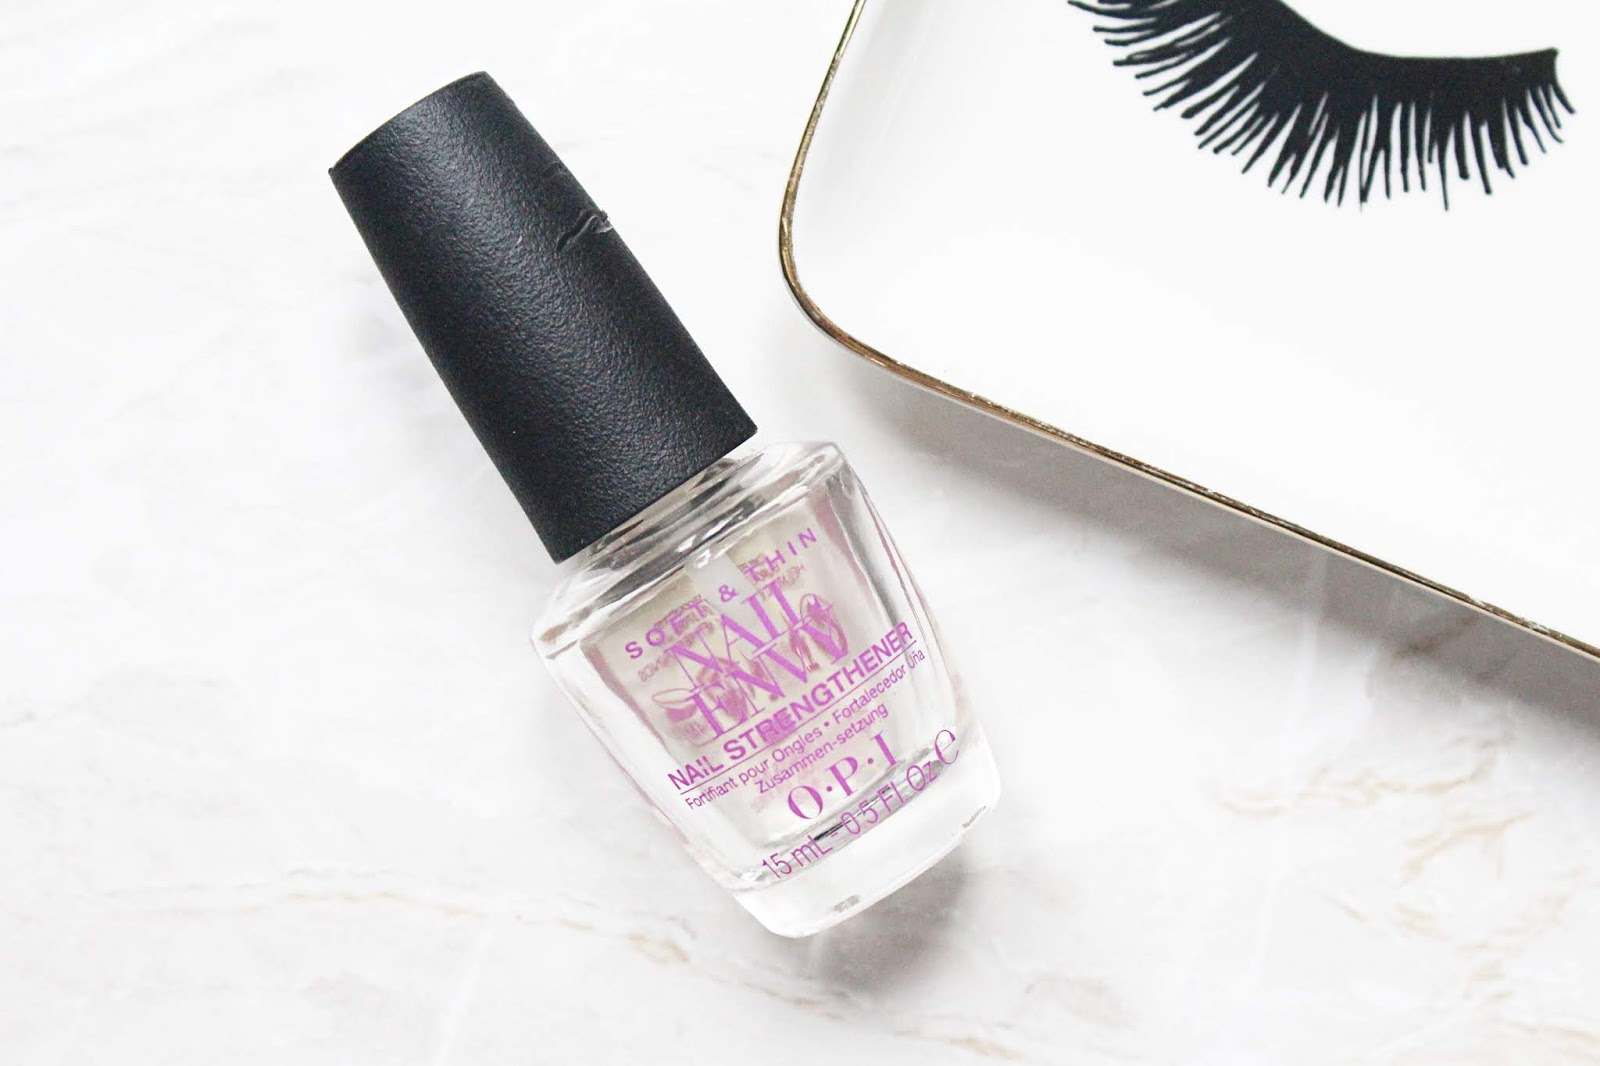 OPI Nail Envy - Soft & Thin Review